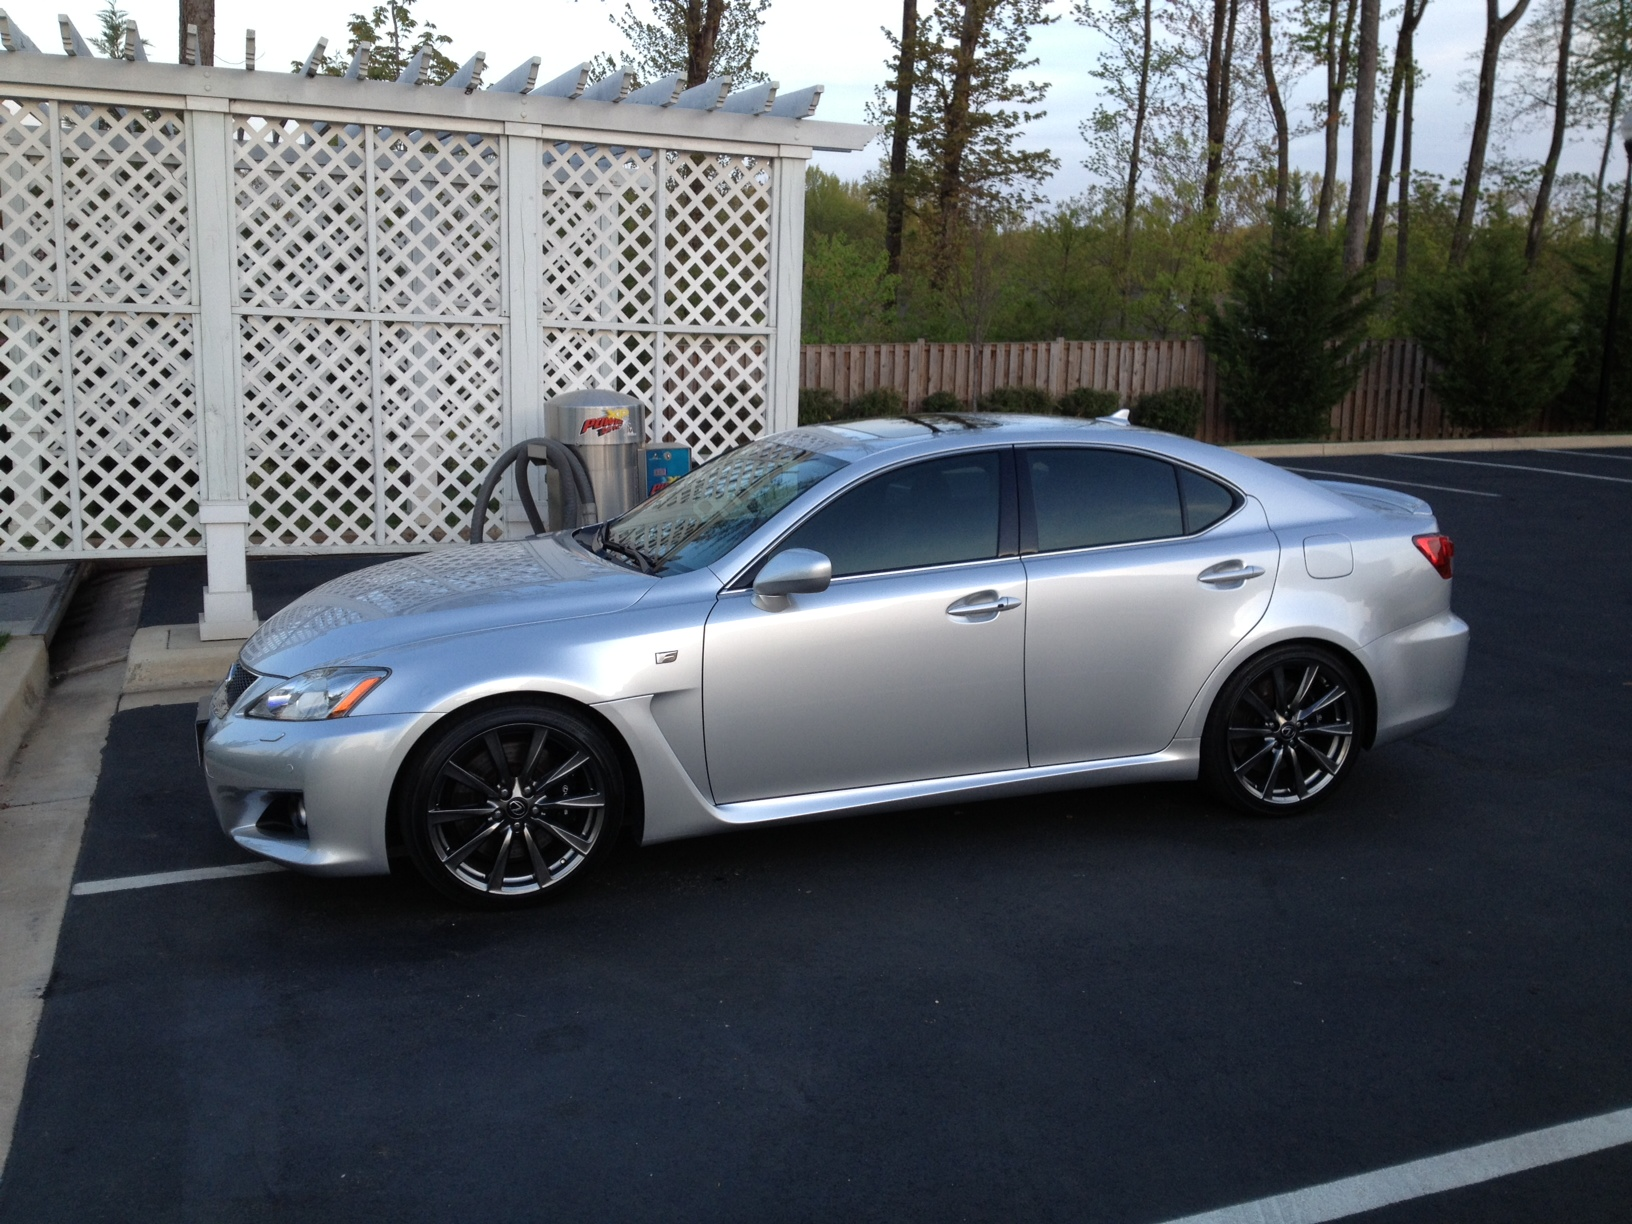 http://auto-database.com/image/lexus-is-f-2008-pictures-169611.jpg